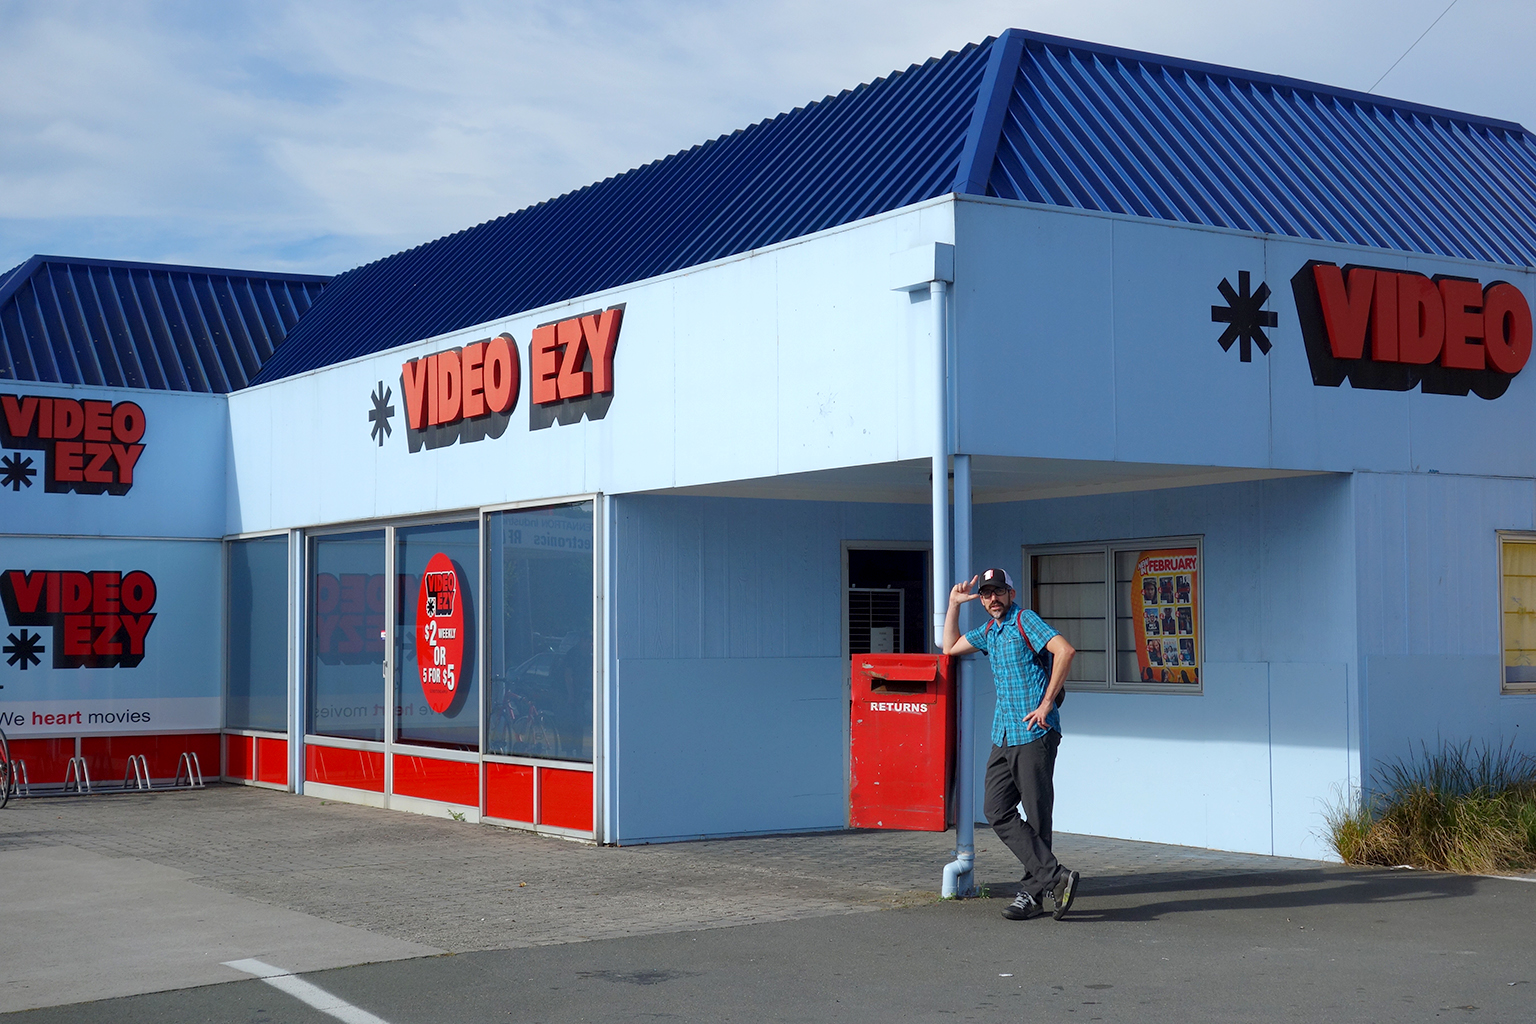 Video stores in New Zealand